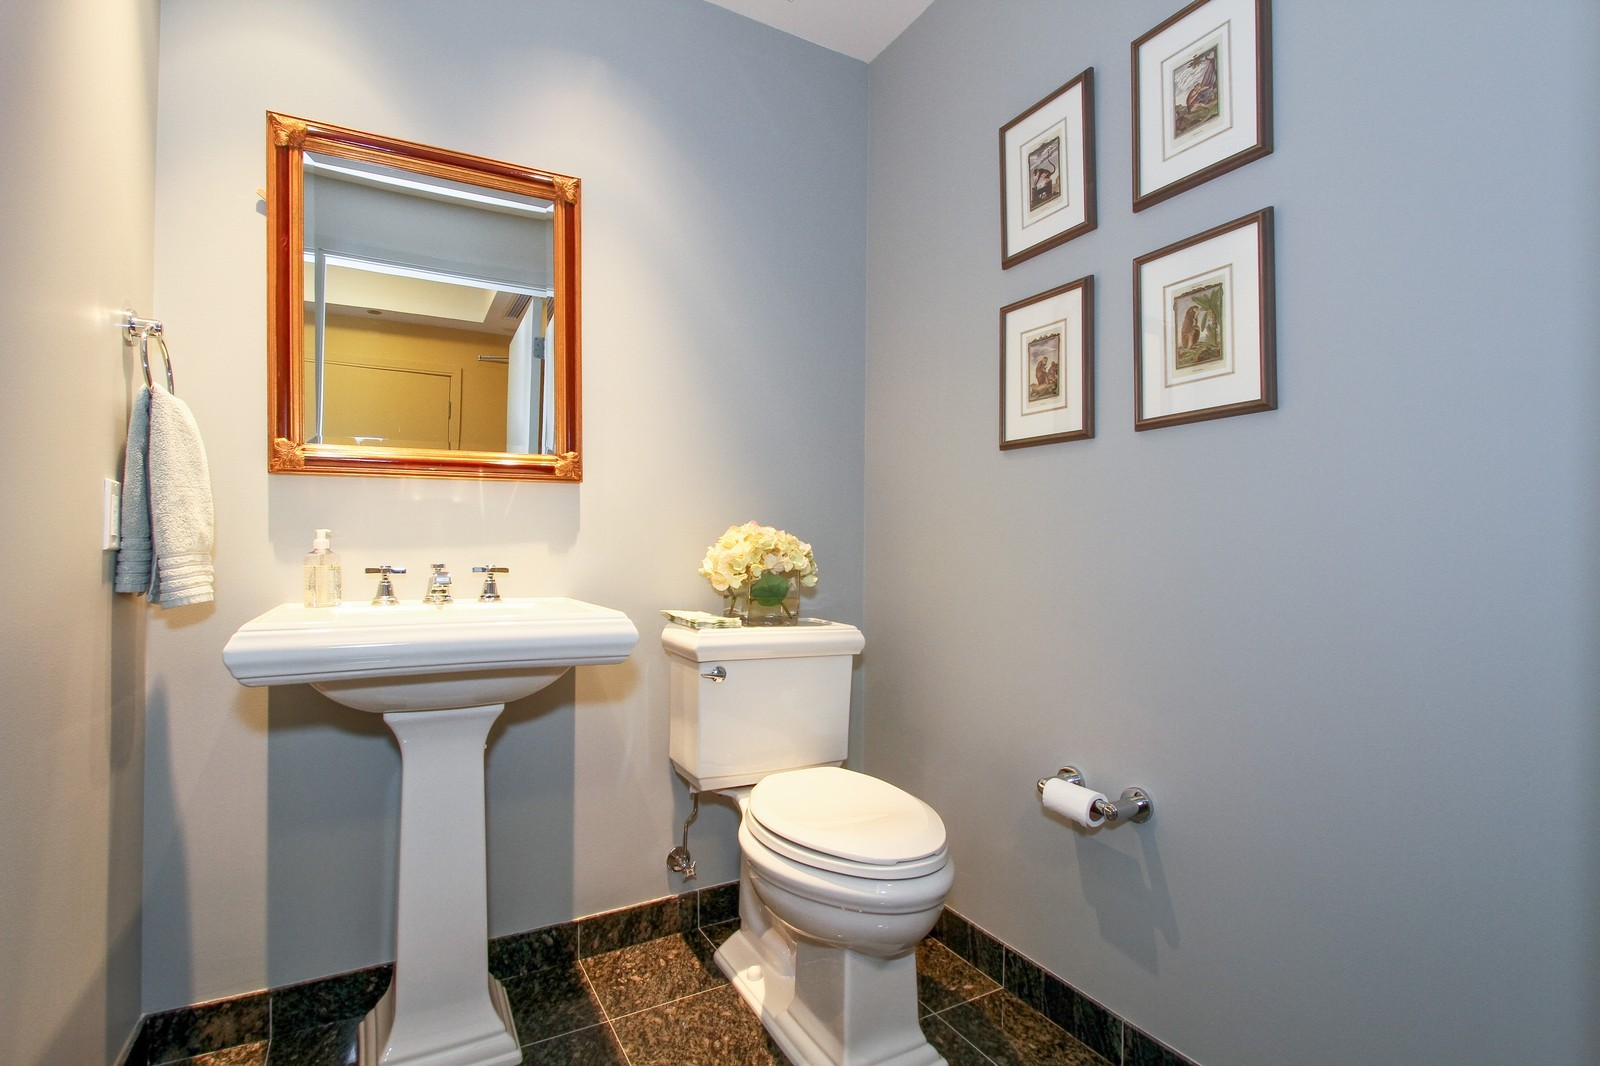 Real Estate Photography - 60 E Monroe, 6501, Chicago, IL, 60603 - Half Bath